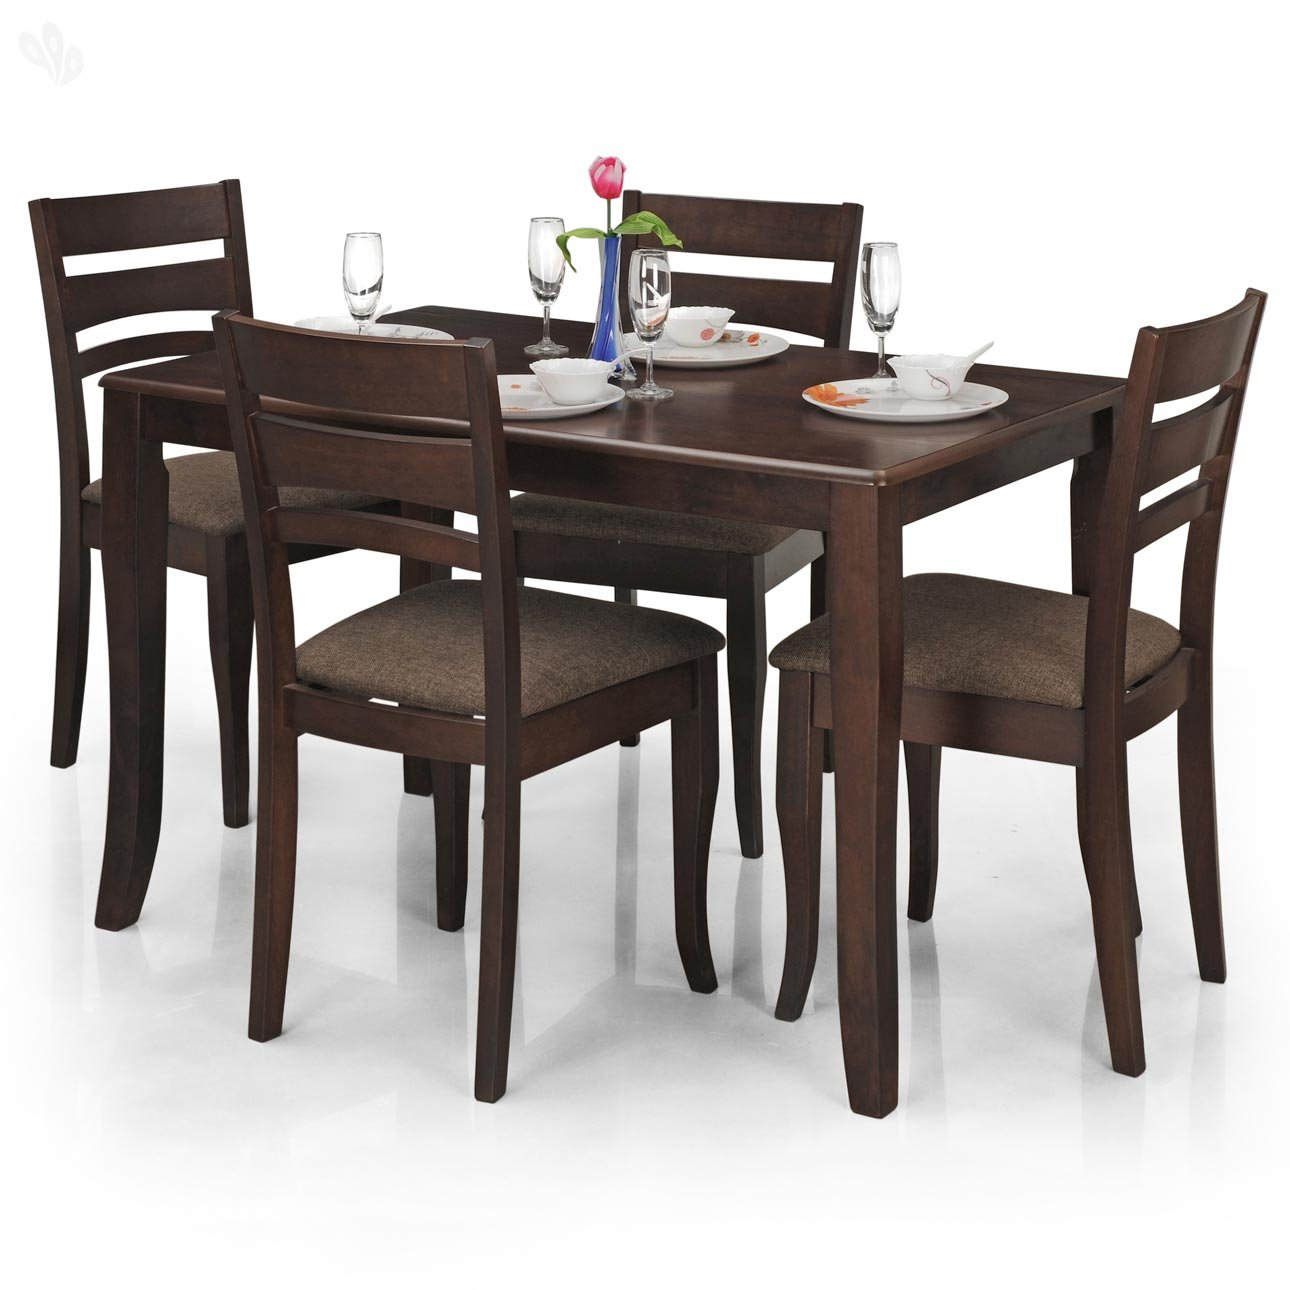 Tables and chairs price list - Dining table images ...